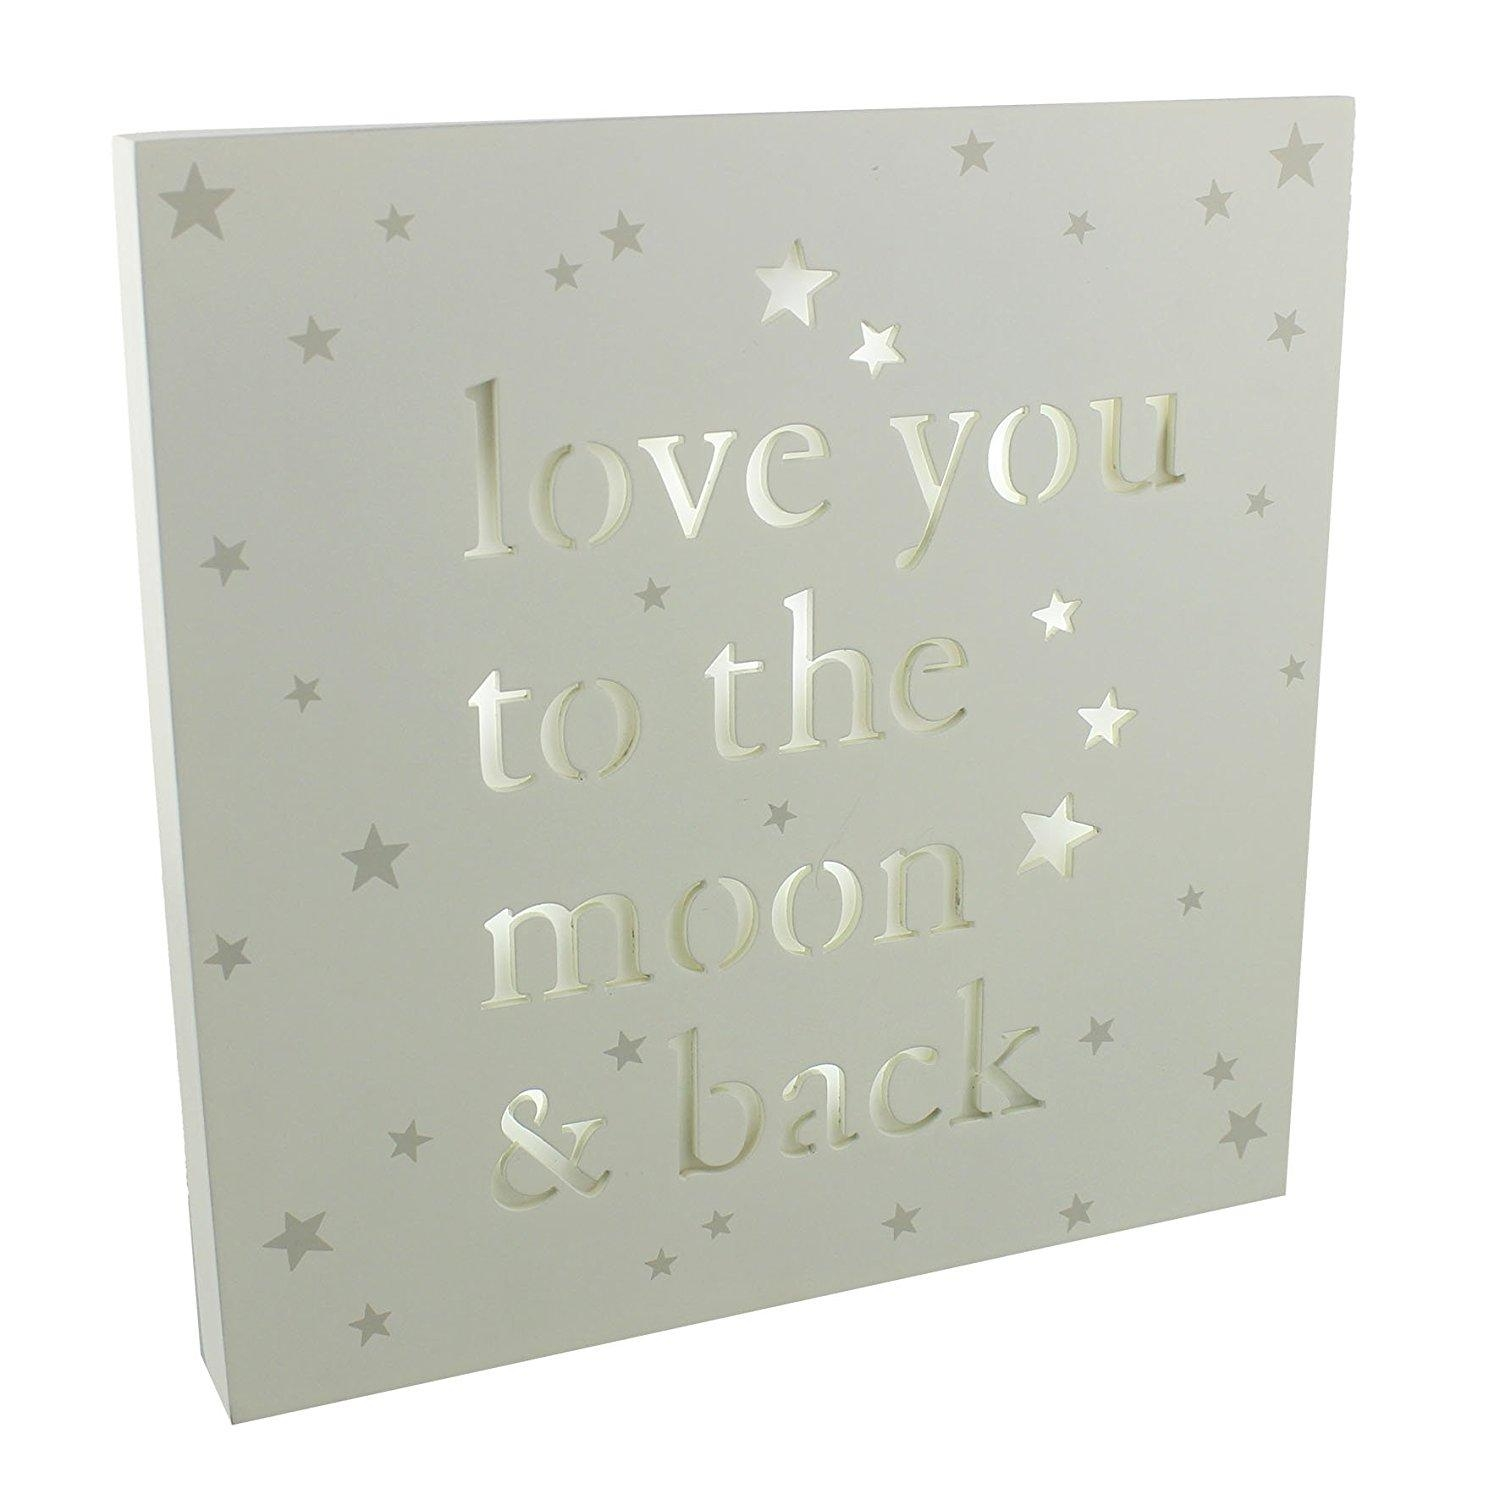 Love You To The Moon And Back Light Up Plaque | Gifts From Handpicked Regarding Love You To The Moon And Back Wall Art (Image 11 of 20)